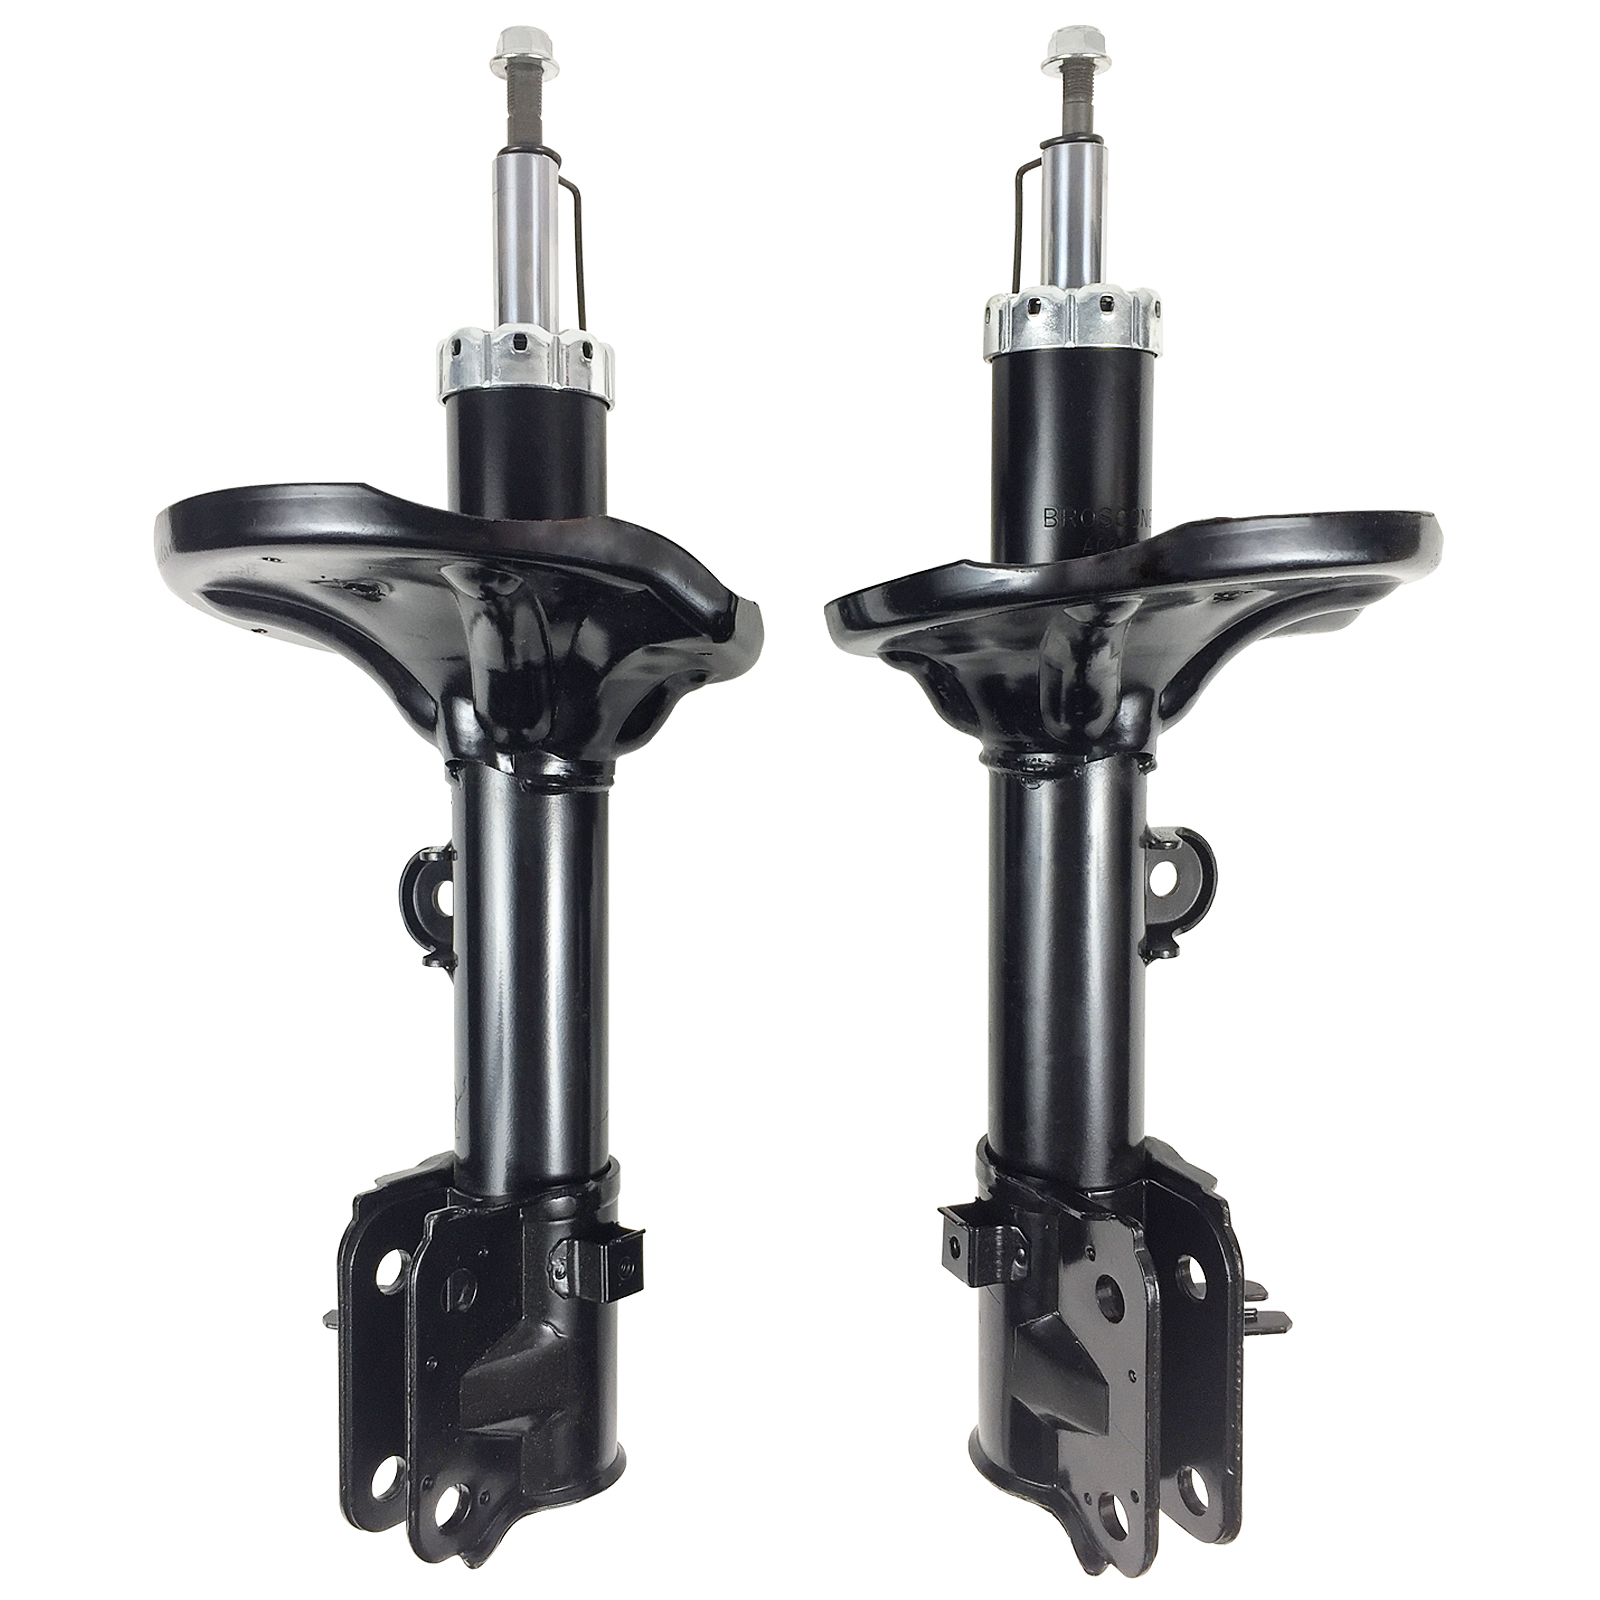 CTCAUTO Rear Pair Shocks Absorber Struts Set for 2007 2008 2009 for Hyundai Entourage,2006 2007 2008 2009 2010 2011 2012 2014 for Kia Sedona 349094 37307